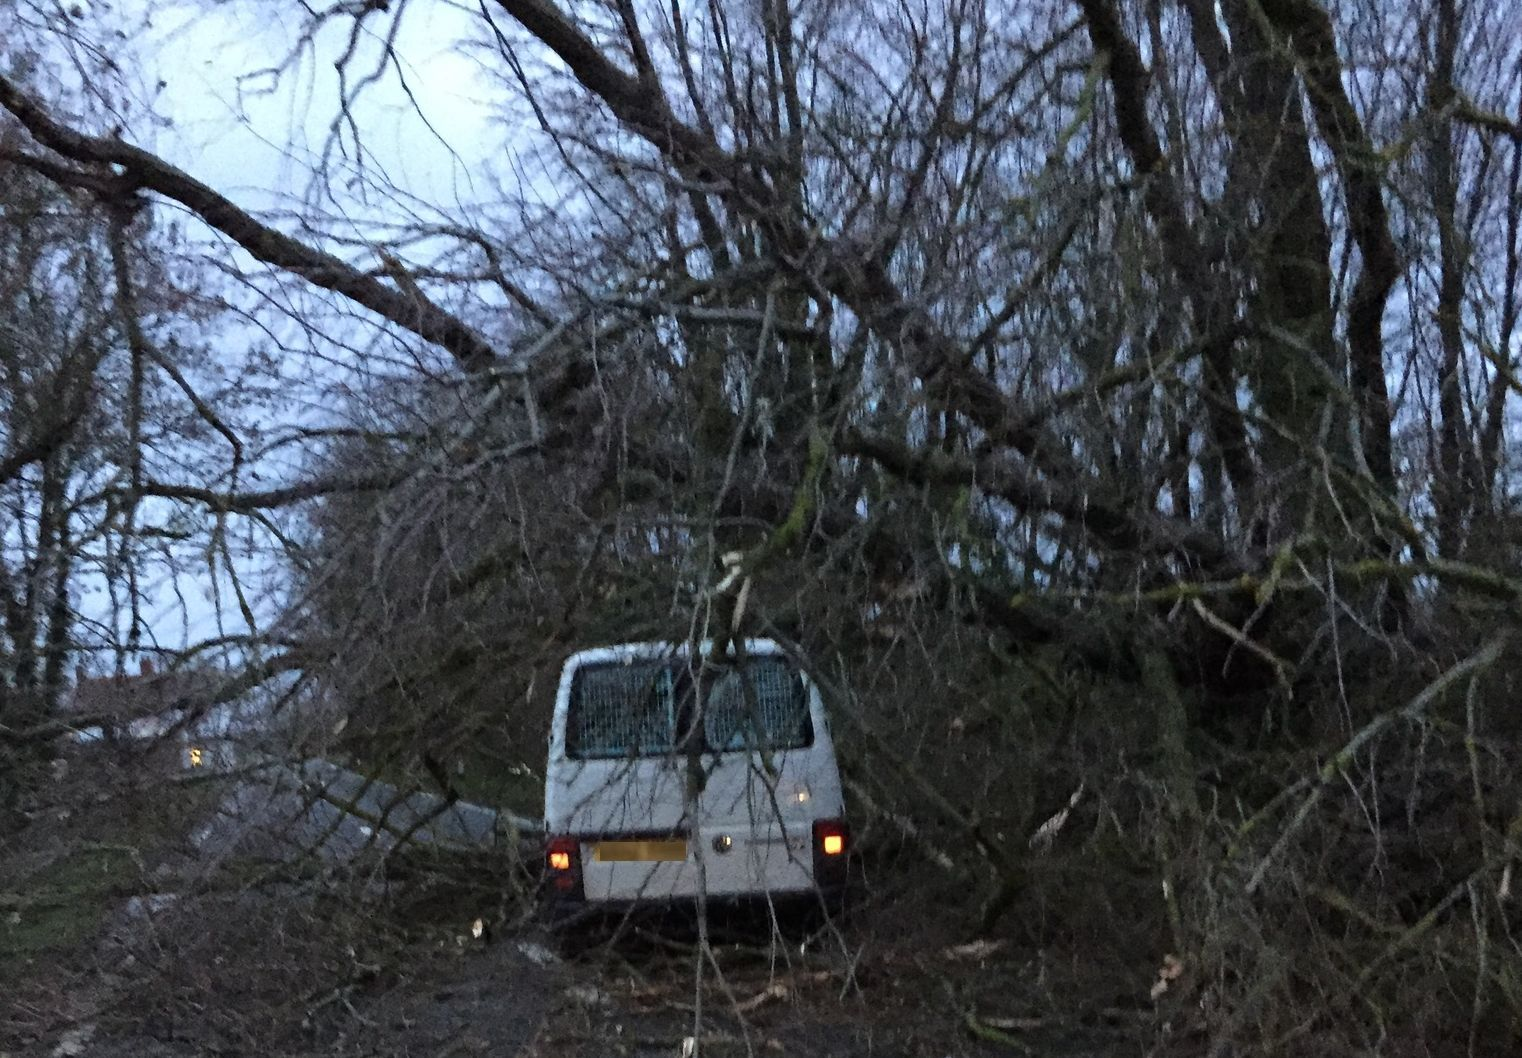 COLLAPSE: Van driver Les Trunks suffered a shock as a tree fell on his van during strong winds last week